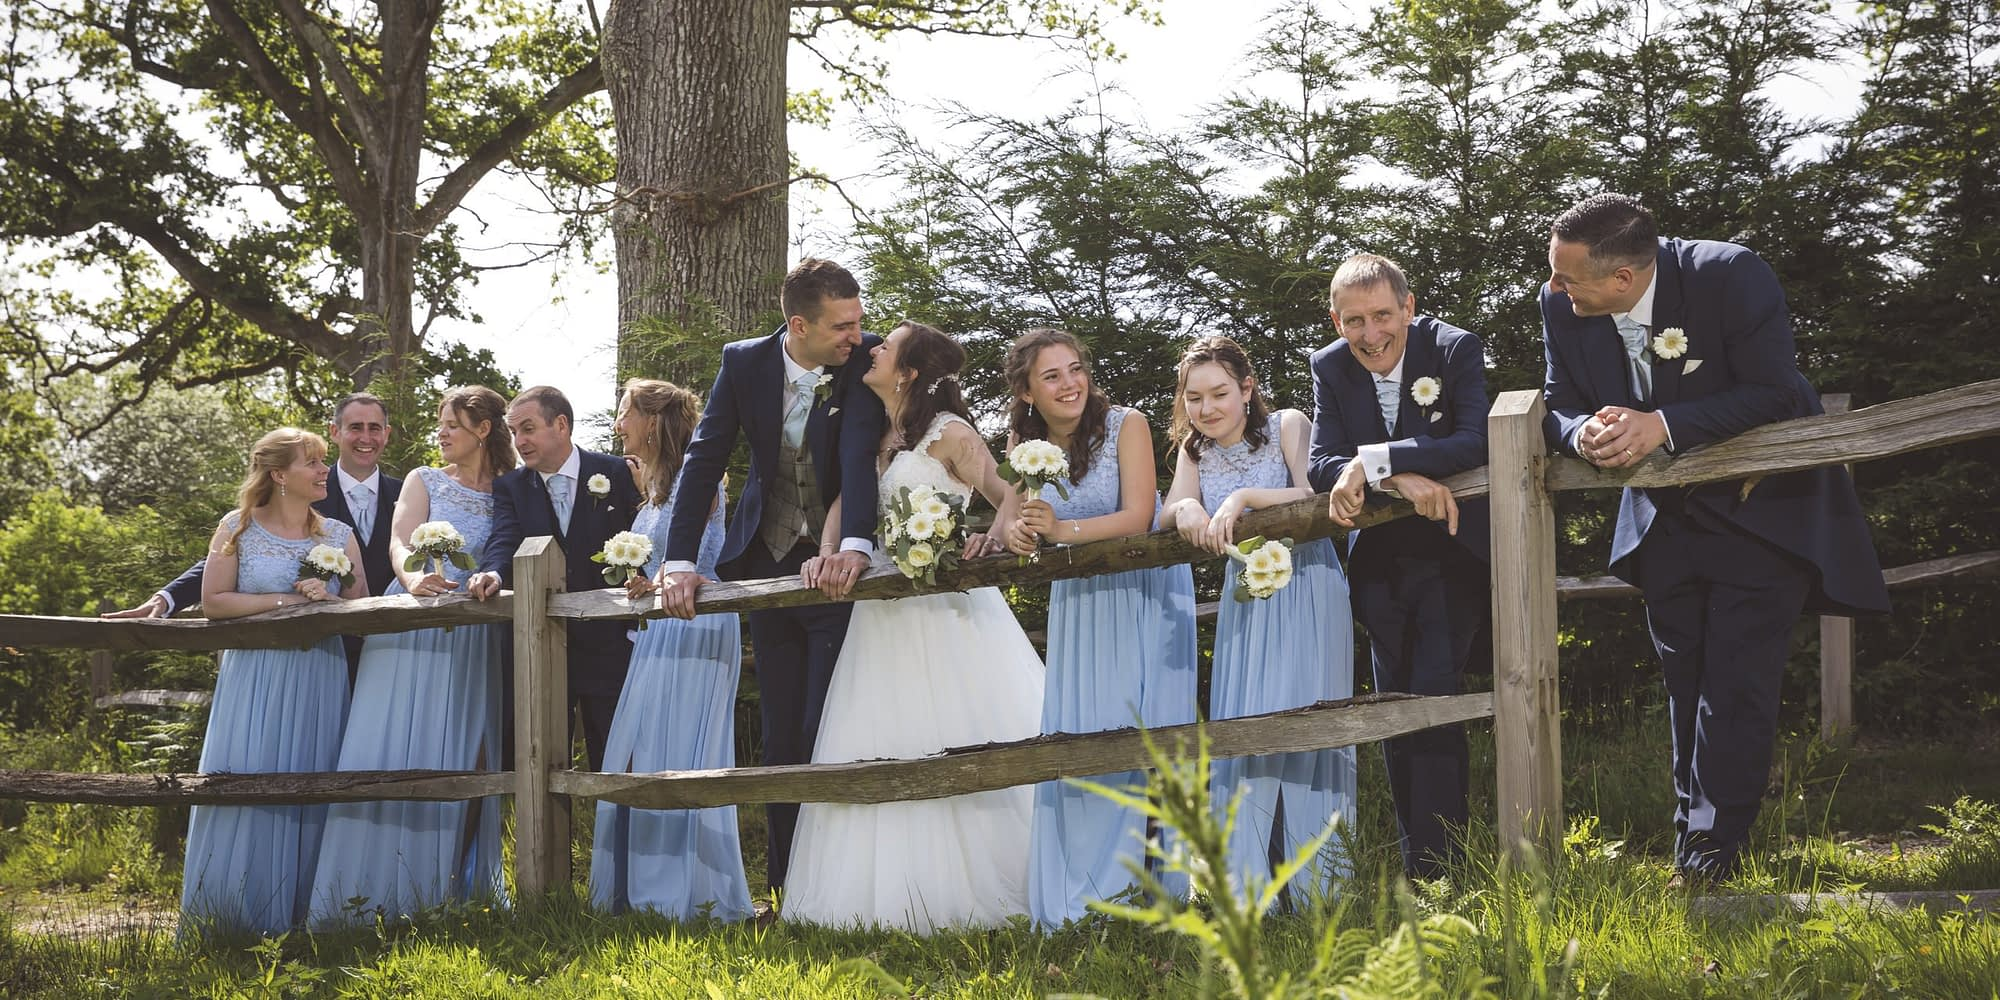 bridal party leaving on a wooden fence talking